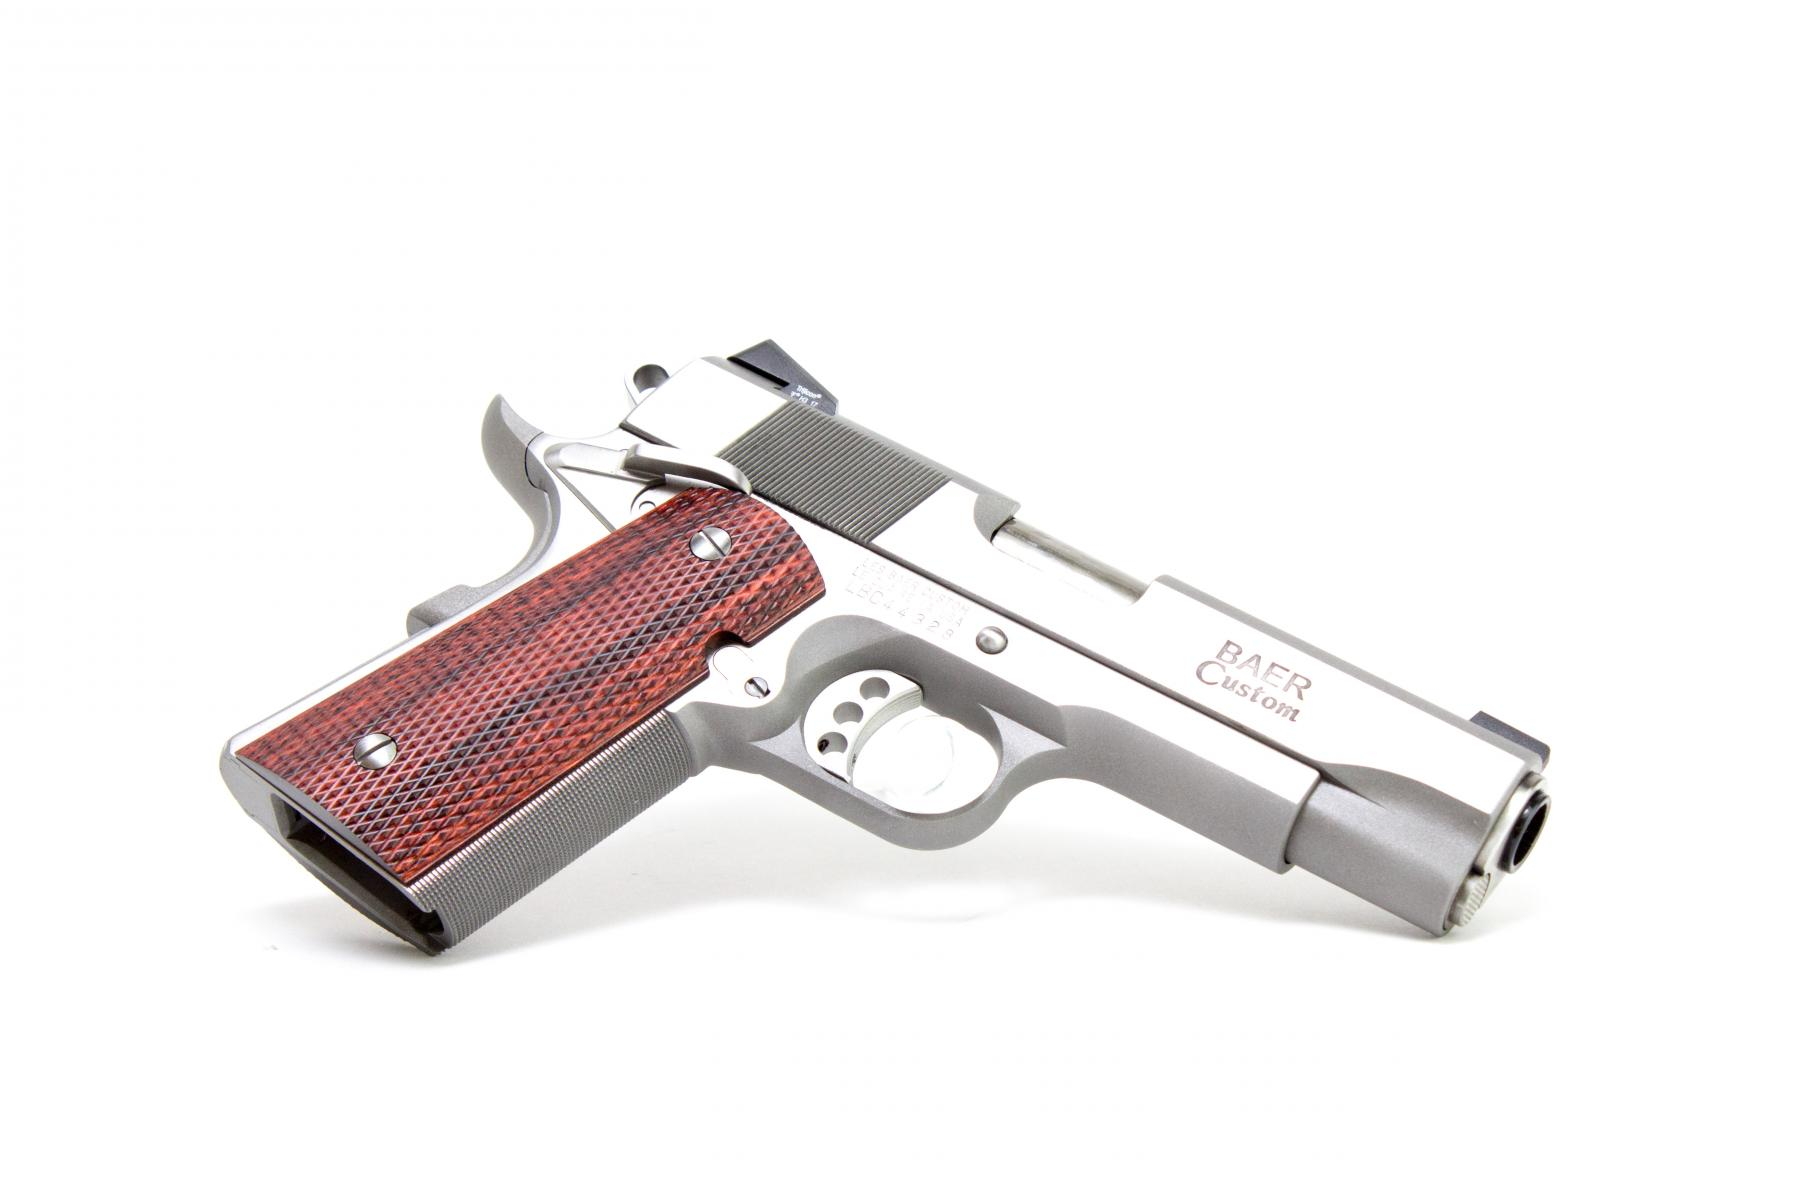 "Les Baer Stinger Stainless |.45ACP 1911 4.25"" Barrel, Stainless Steel, Night Sights, Stinger Slide/ Commanche Frame, Extended Ambi Safety, Rounded Edges, Cocobolo Grips, 2 7-Round Magazines"